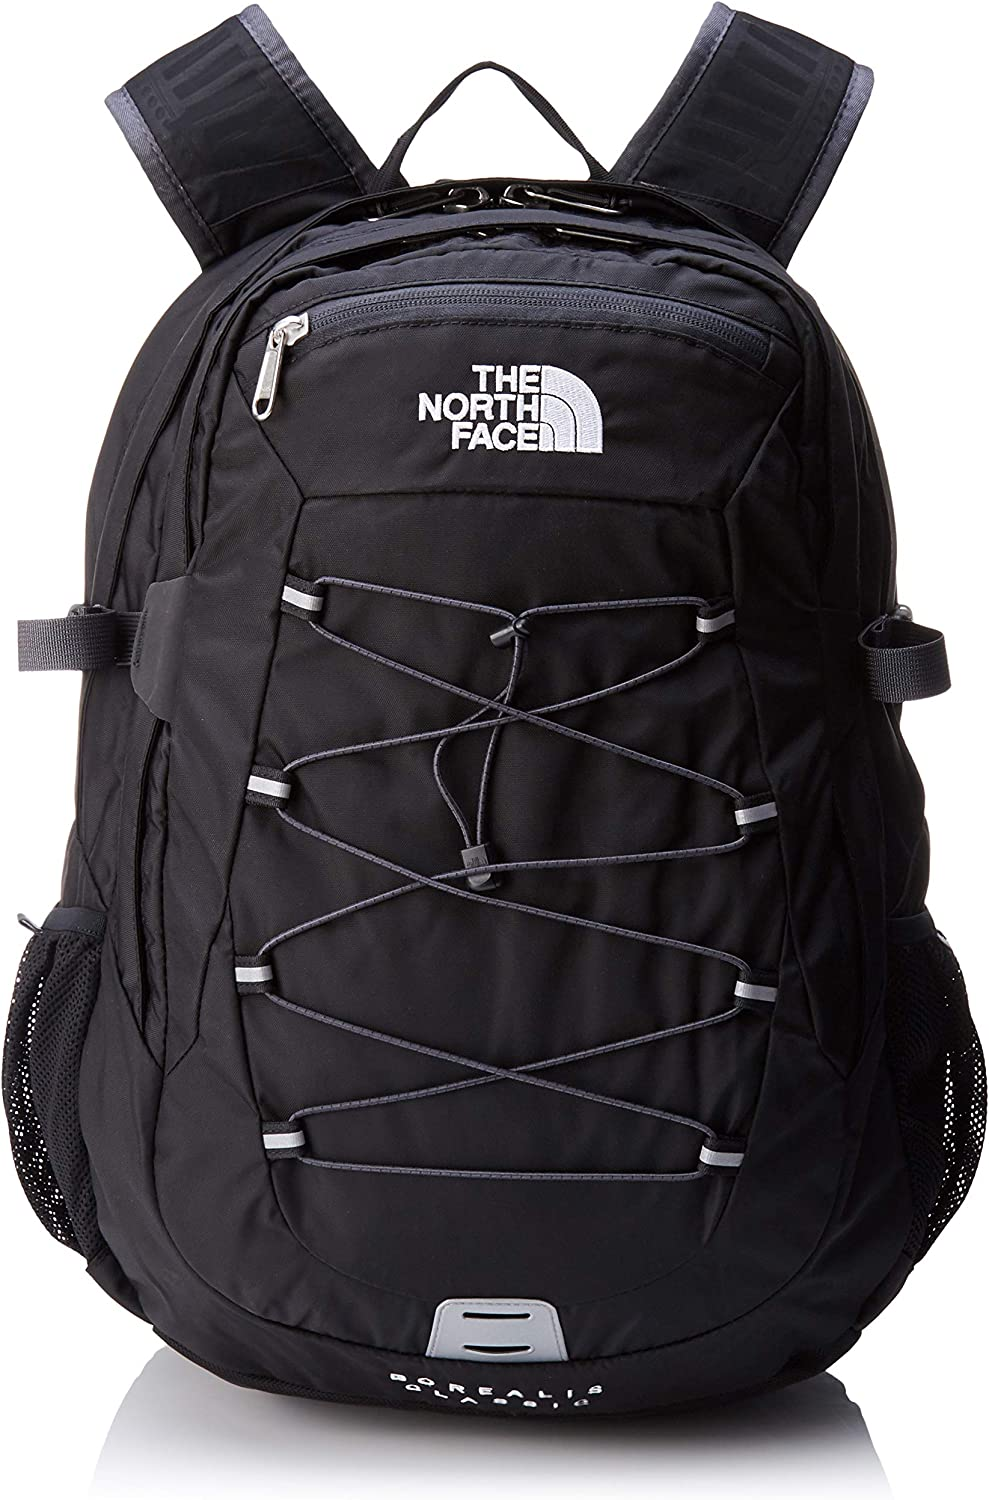 Mochila The North Face modelo Borealis